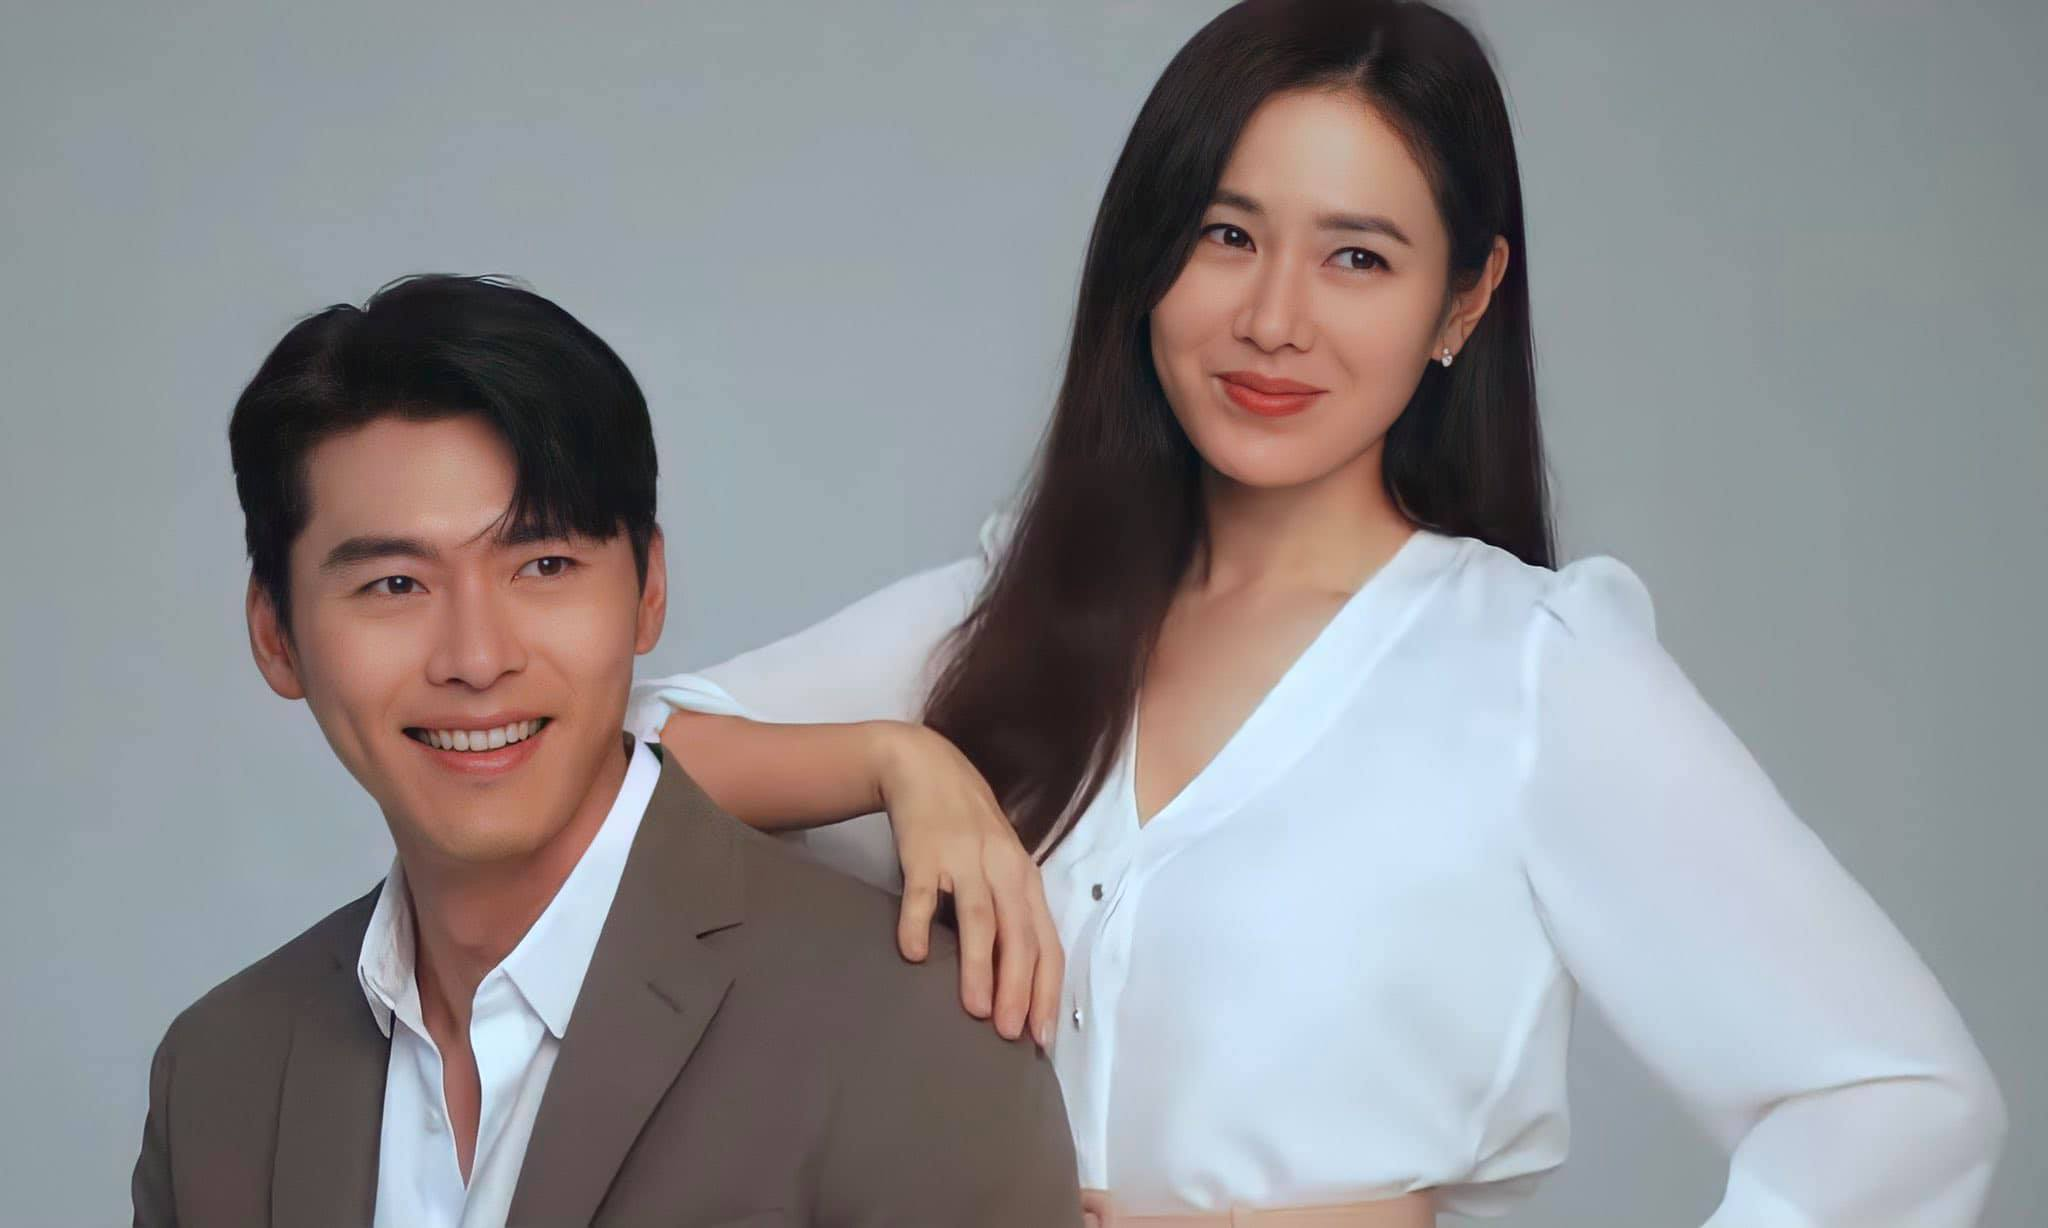 Hyun Bin and Son Ye Jin after dating: Revealing the advertising project's behind-the-scenes is too cute and sweet, netizens ask when they get married? 2